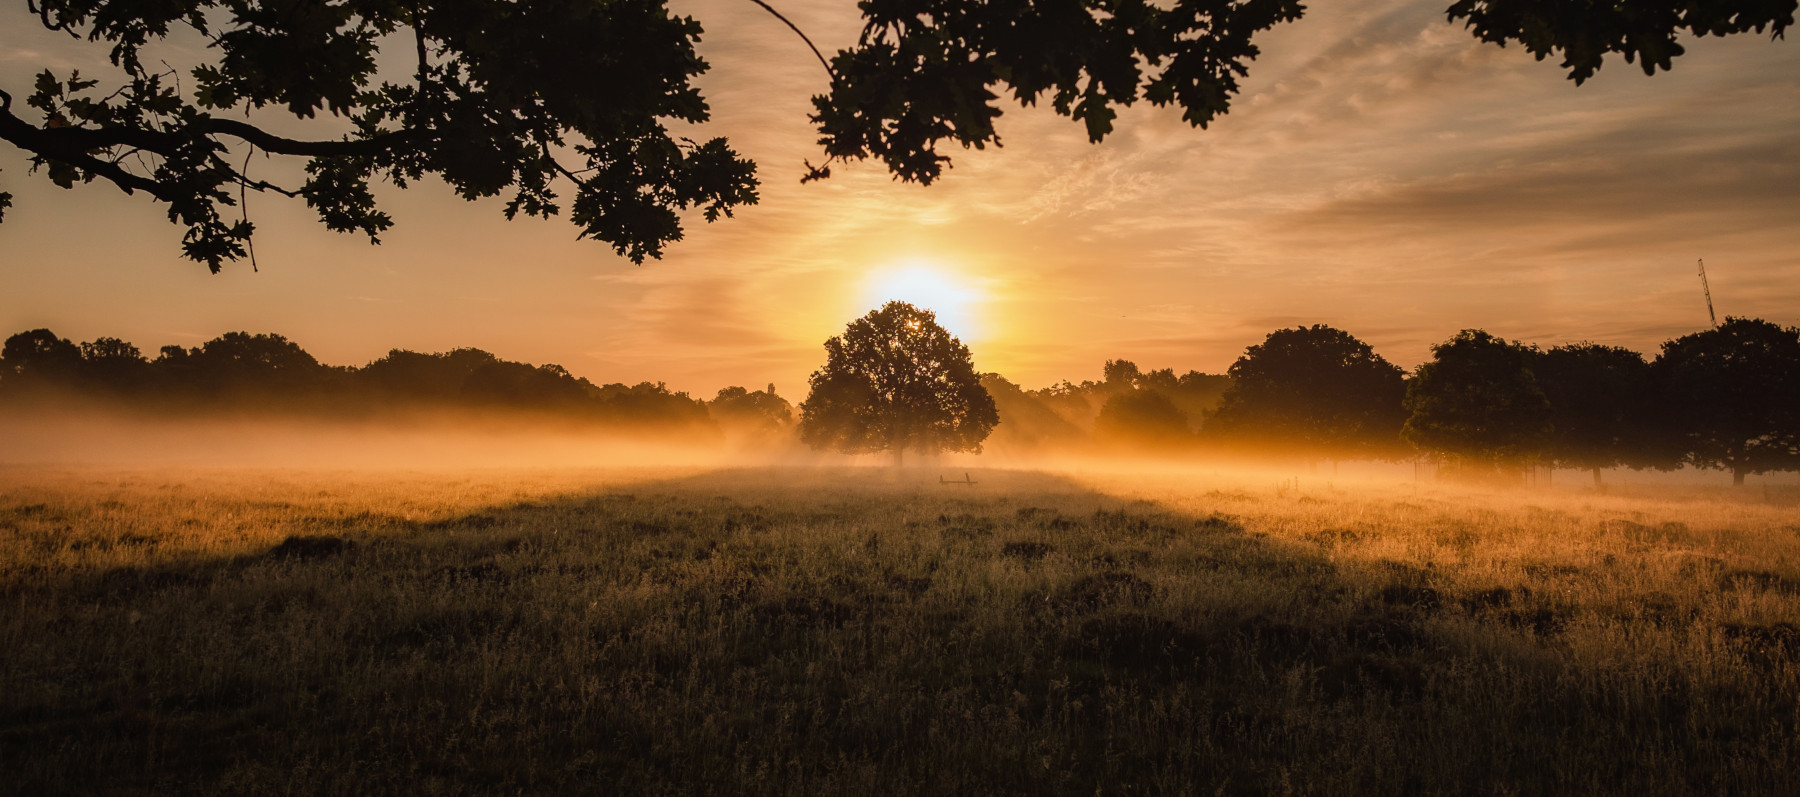 Glowing picture of a tree in a field, early morning